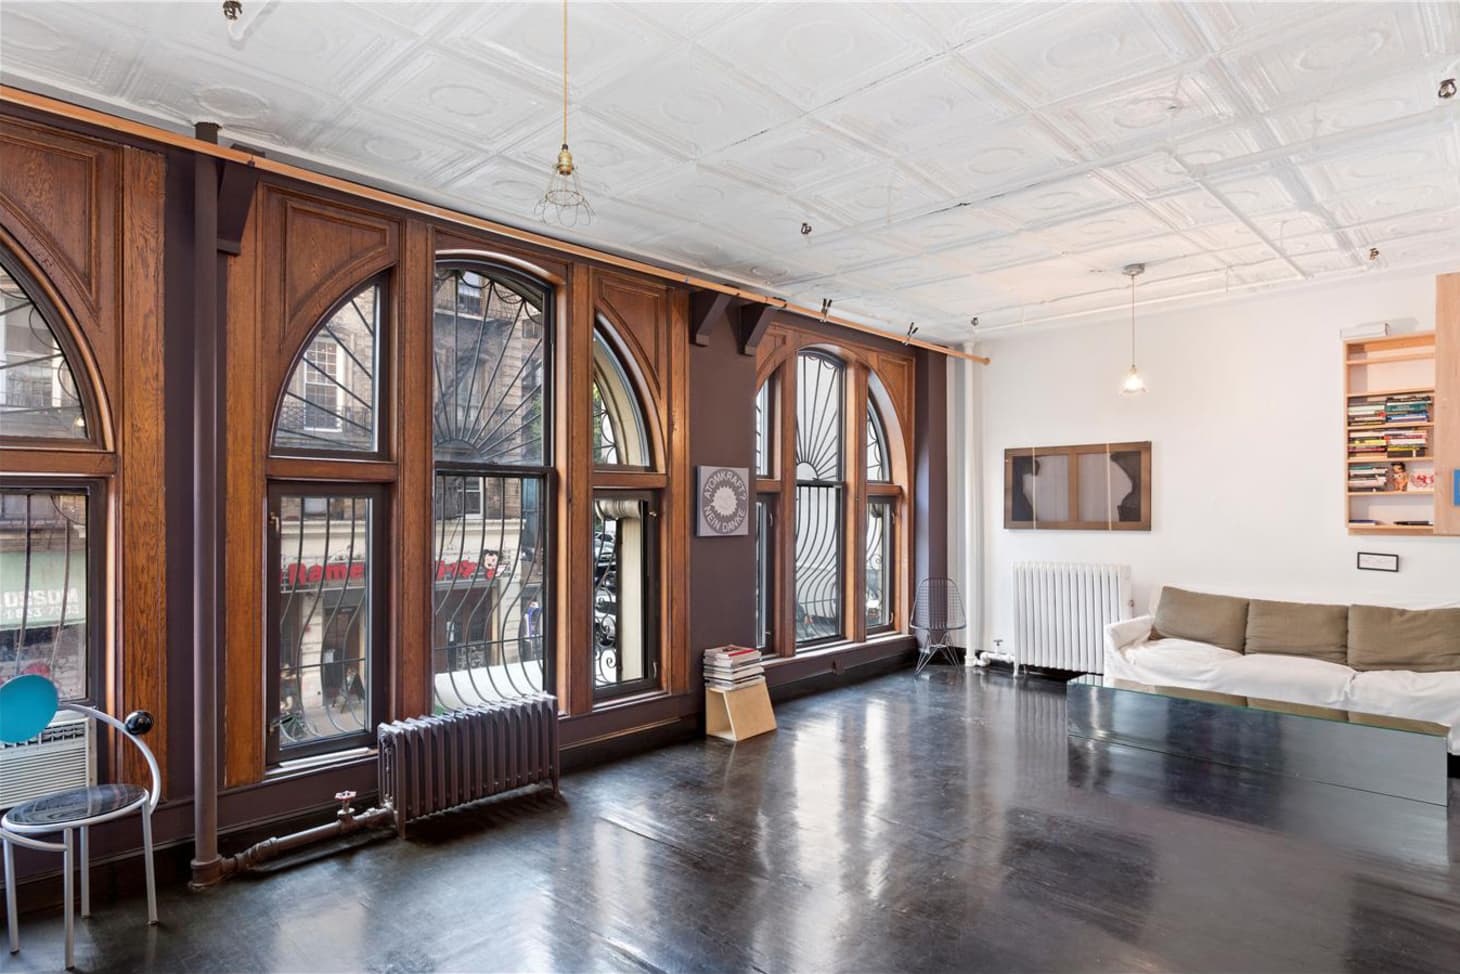 What Does a Million Dollar Apartment in NYC Look Like